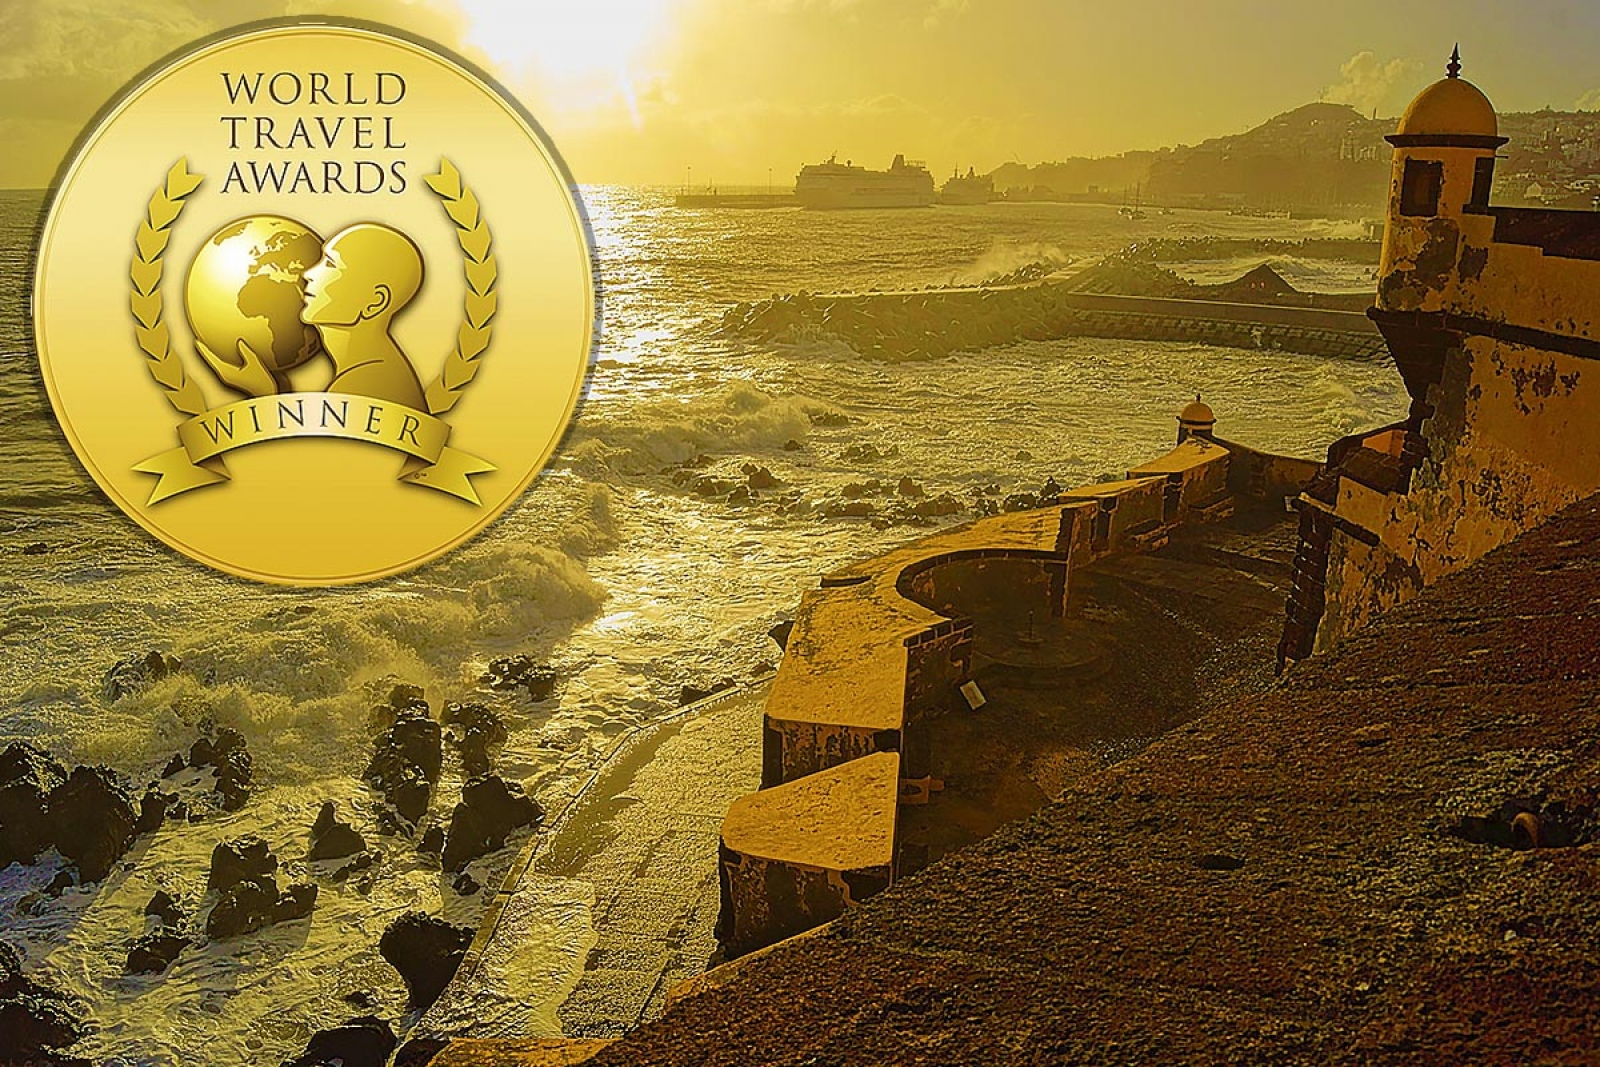 MADEIRA WINS THE WORLD TRAVEL AWARD